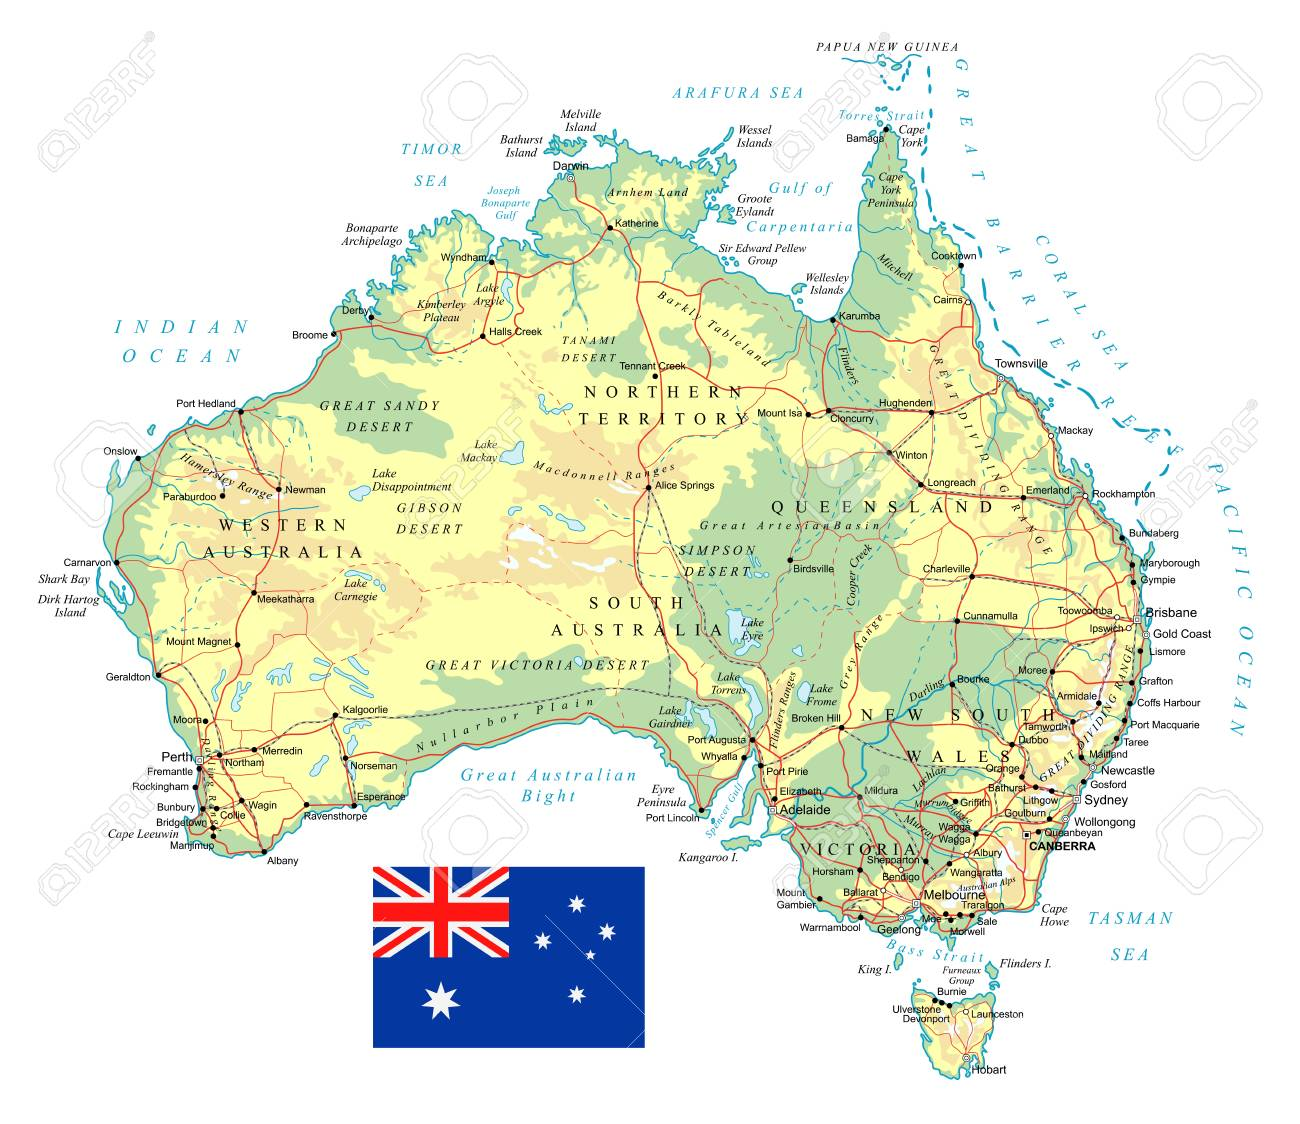 Road Map Australia.Large Detailed Road Map Of Australia And National Flag Royalty Free